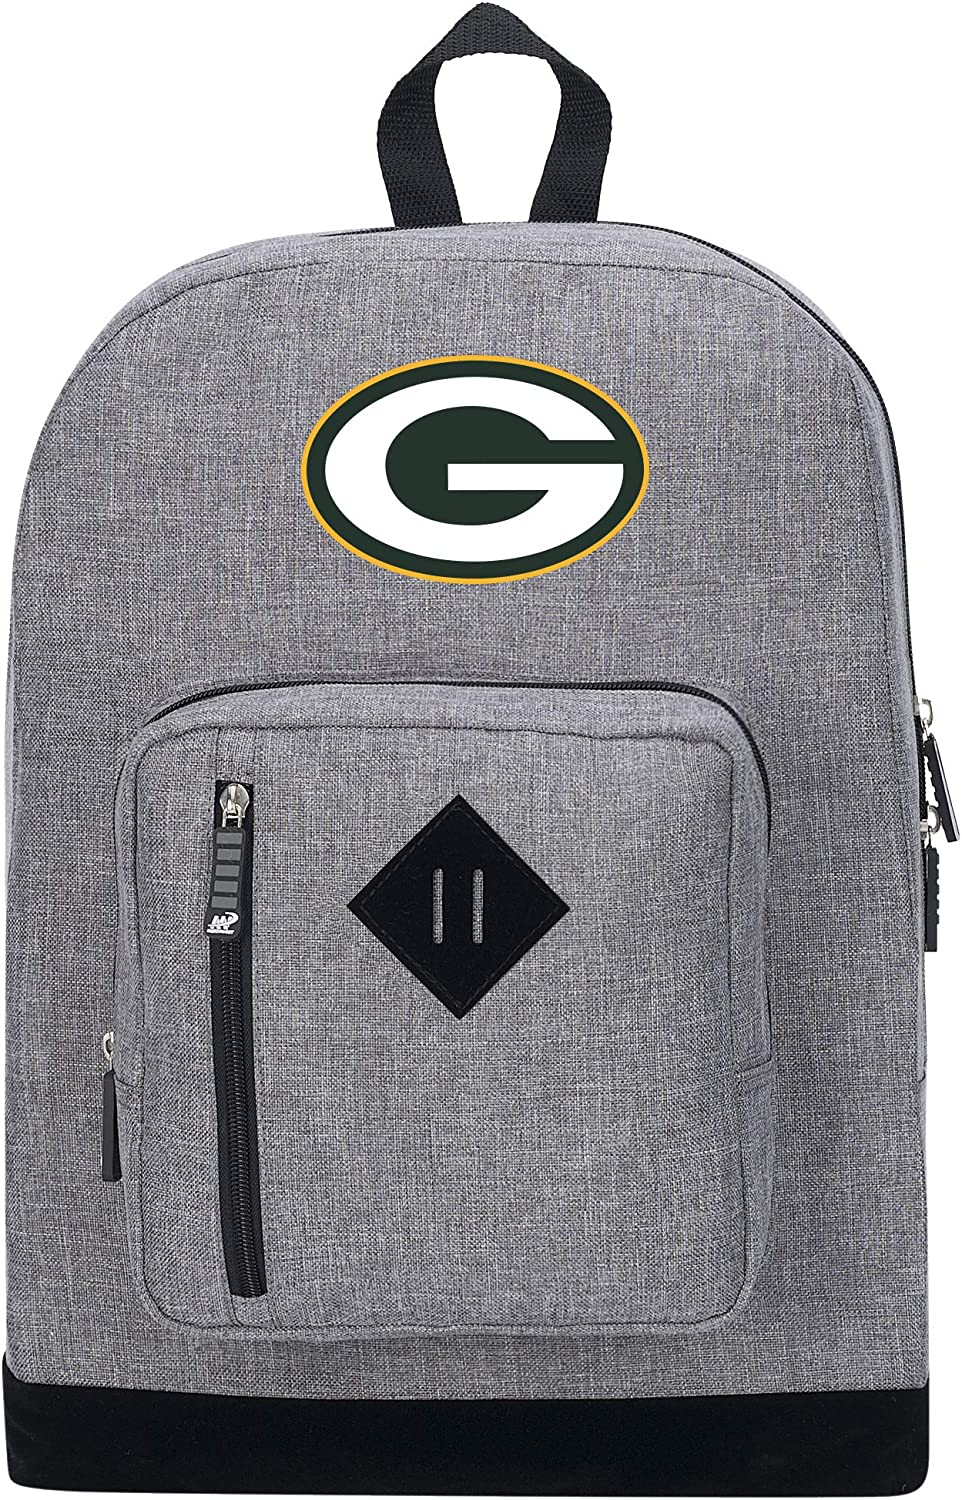 Green Bay Packers Historic Art Backpack Version 2